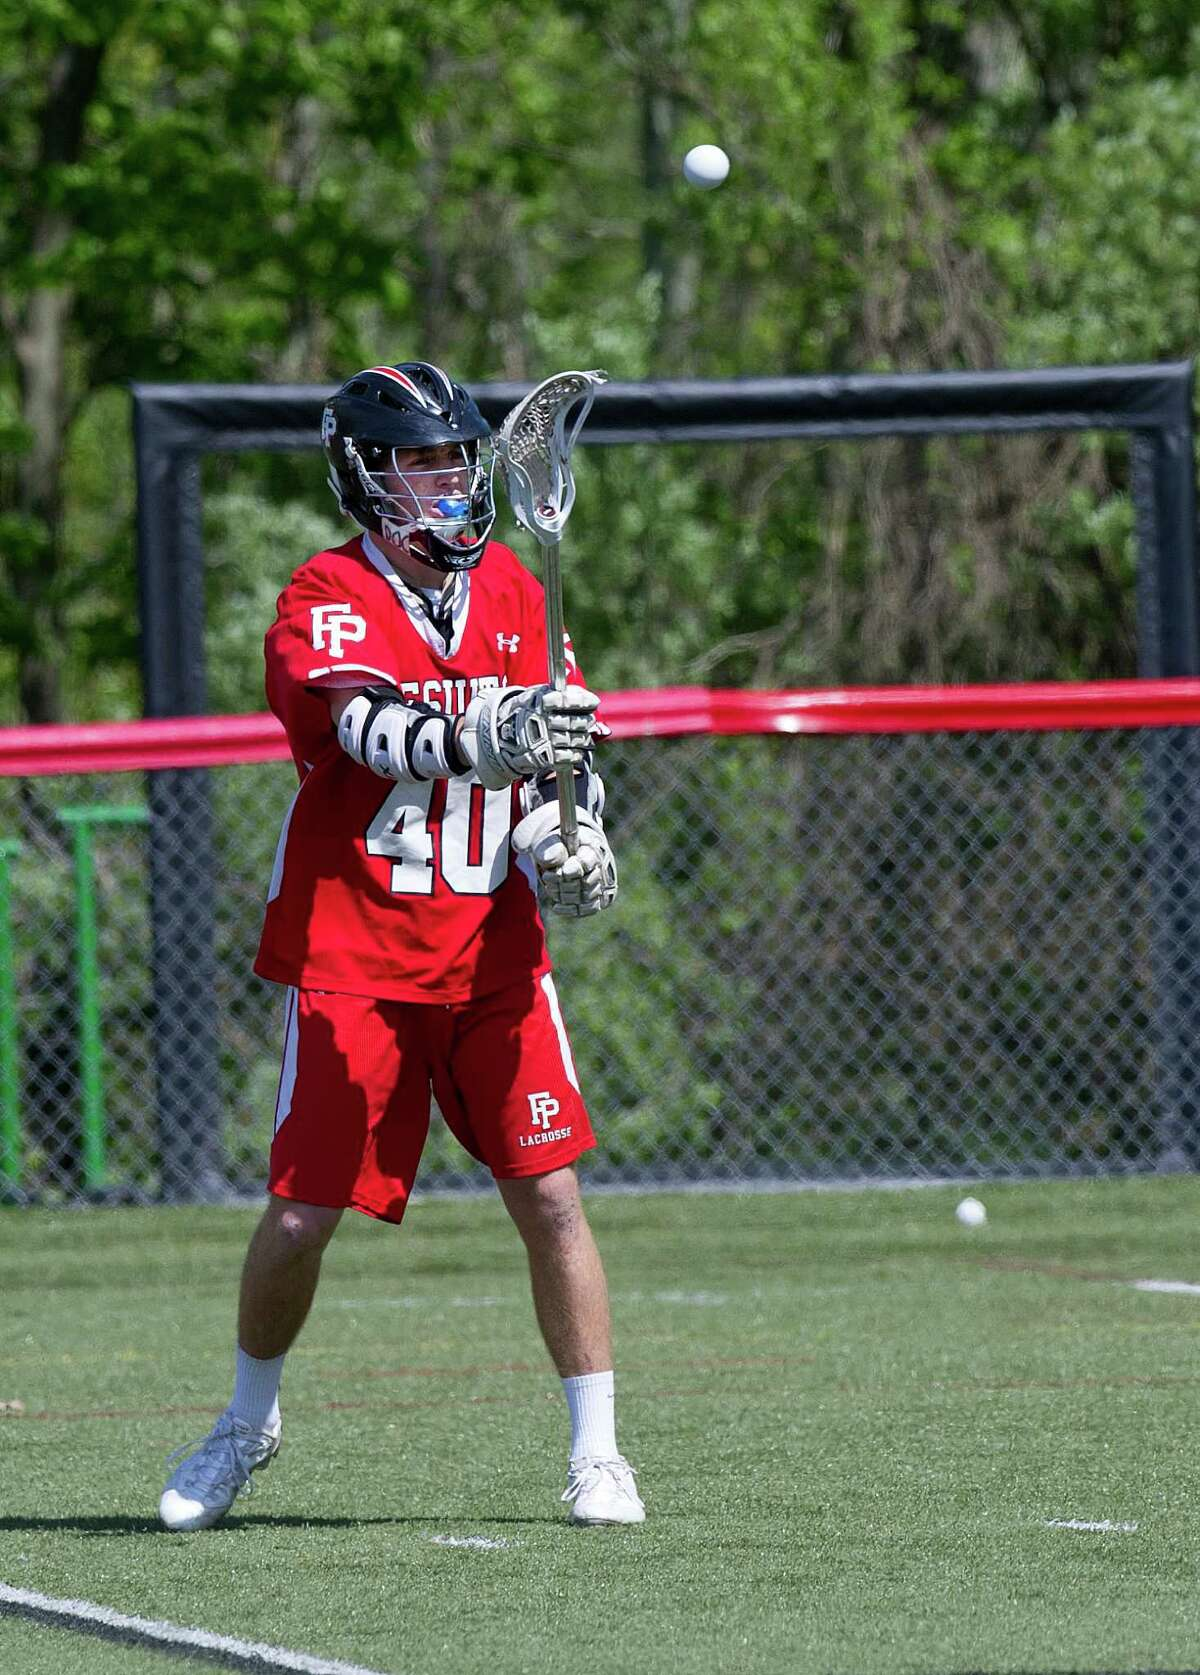 Fairfield Prep's Patrick Lambert passes the ball during Saturday's lacrosse game at New Canaan High School on May 17, 2014.